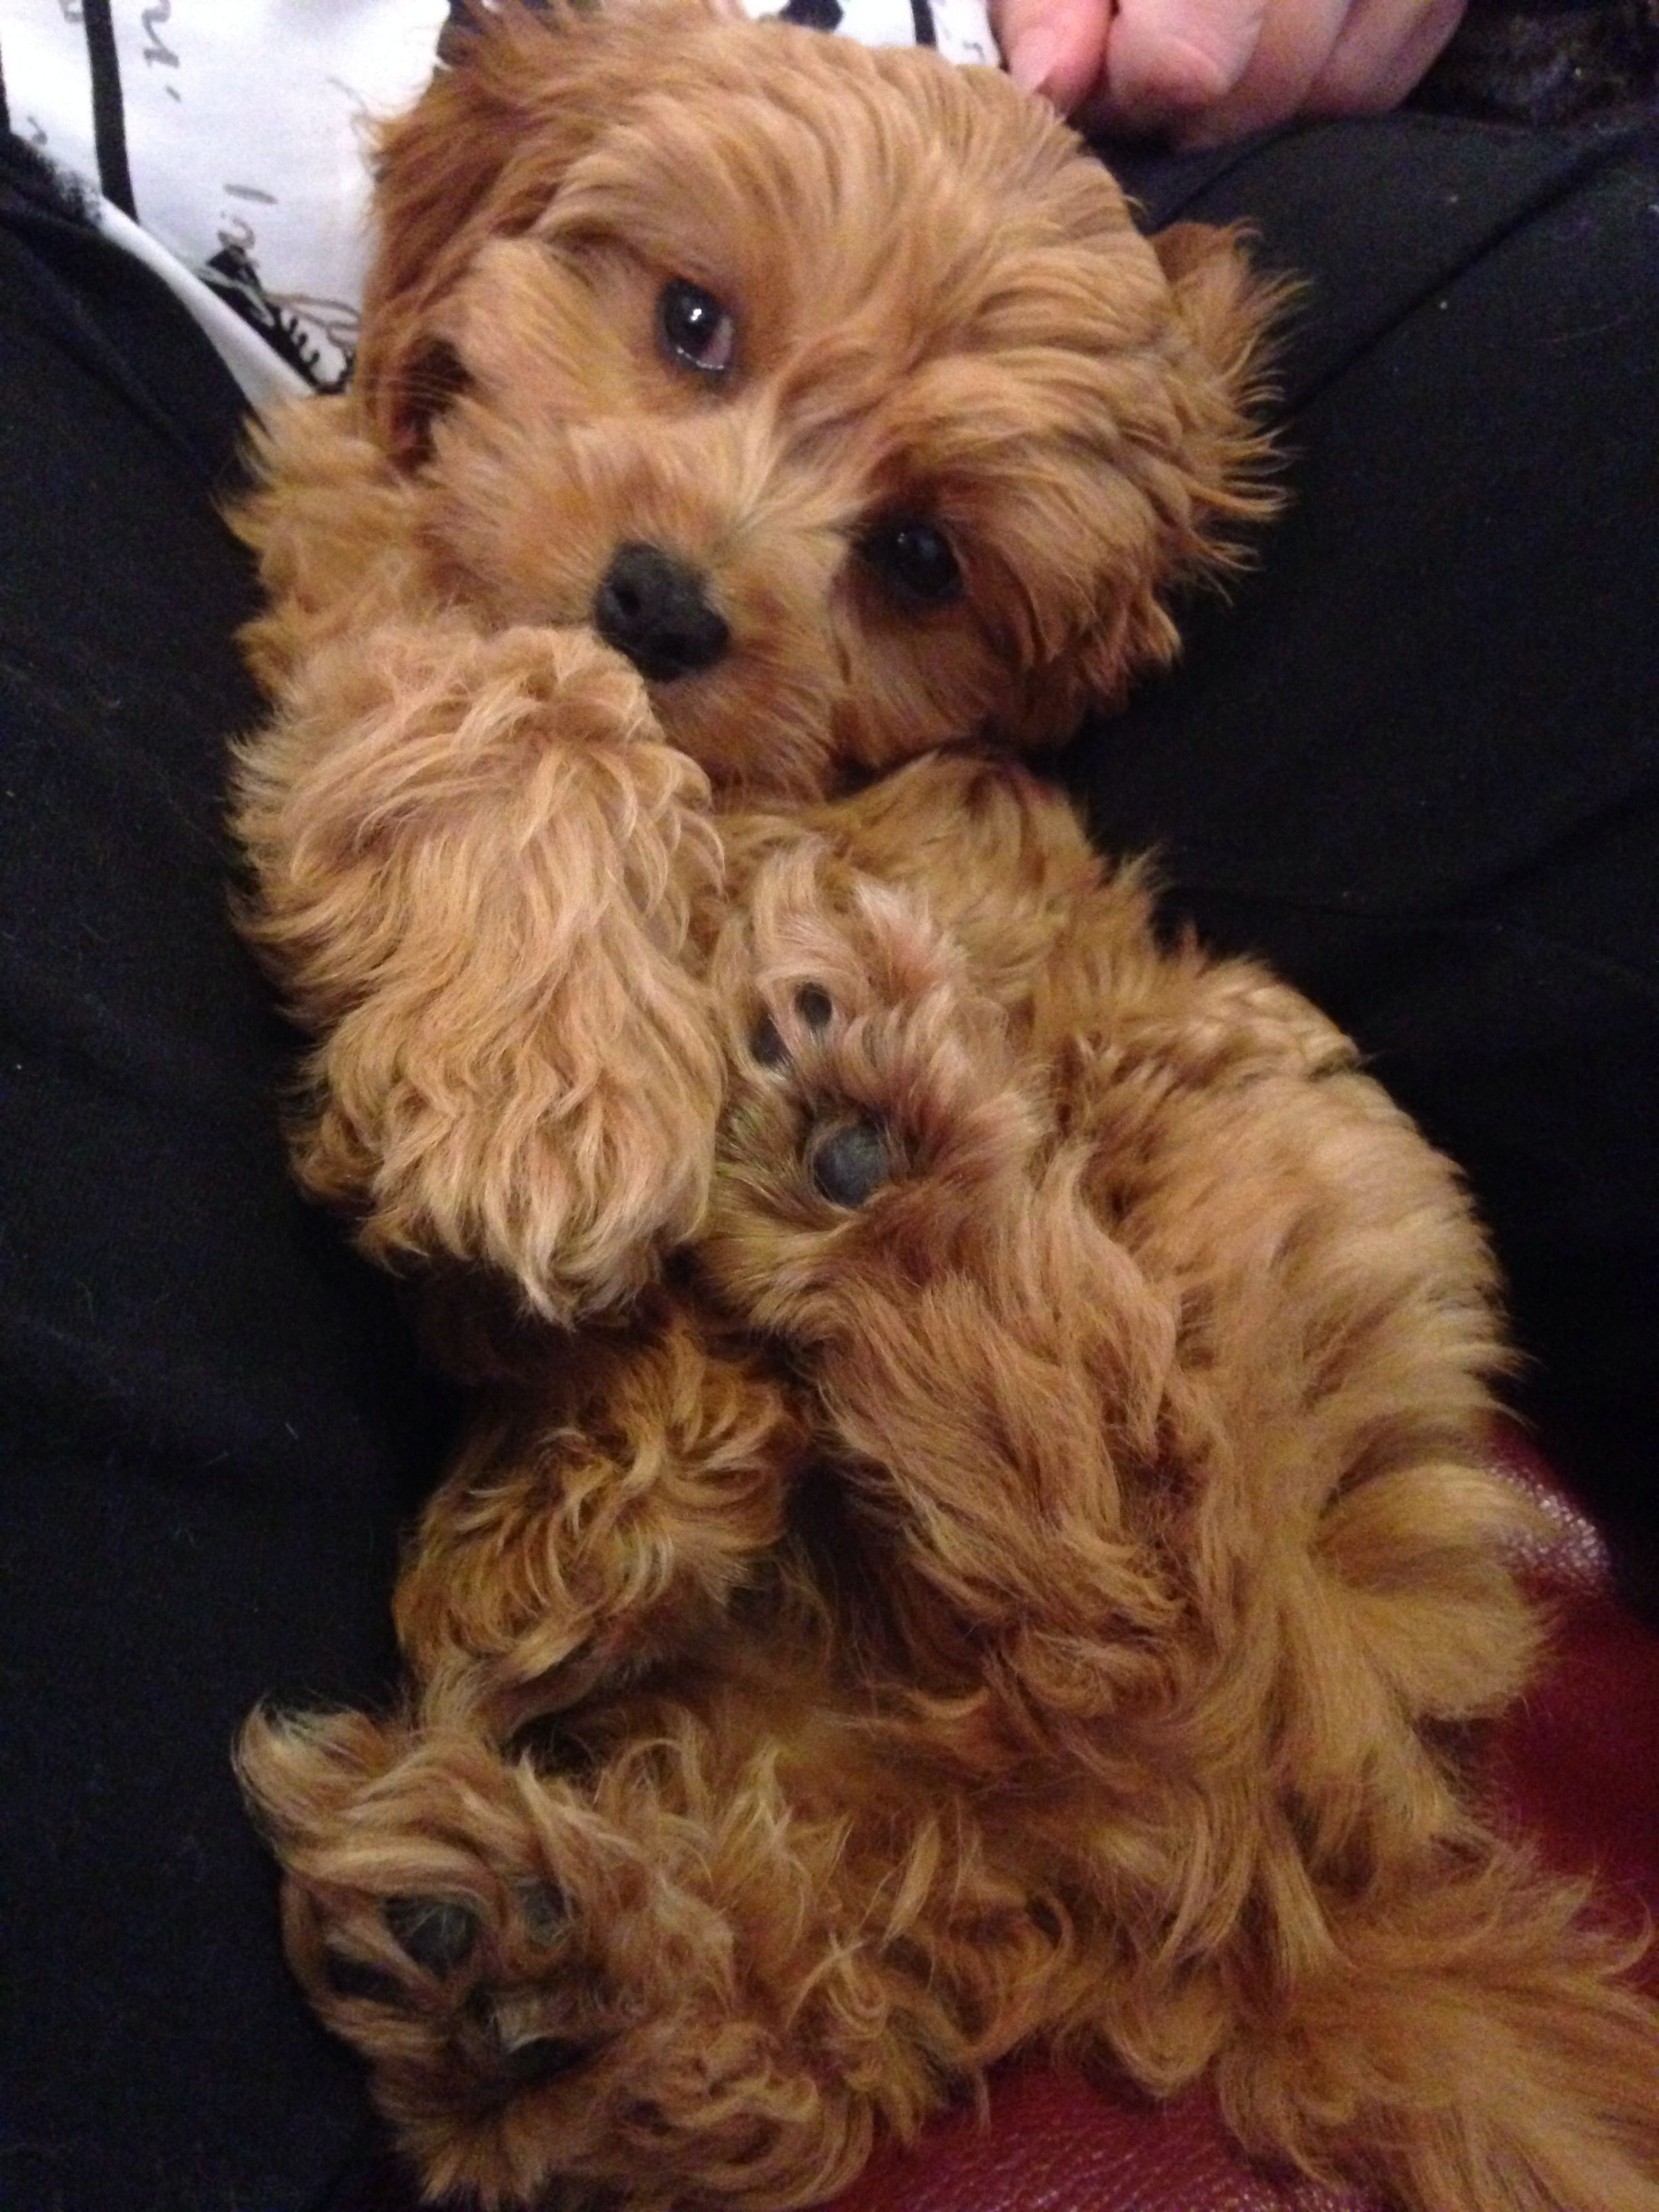 Poppydix Puppy Cavoodle Cute Cute Fluffy Puppies Puppies Puppies And Kitties